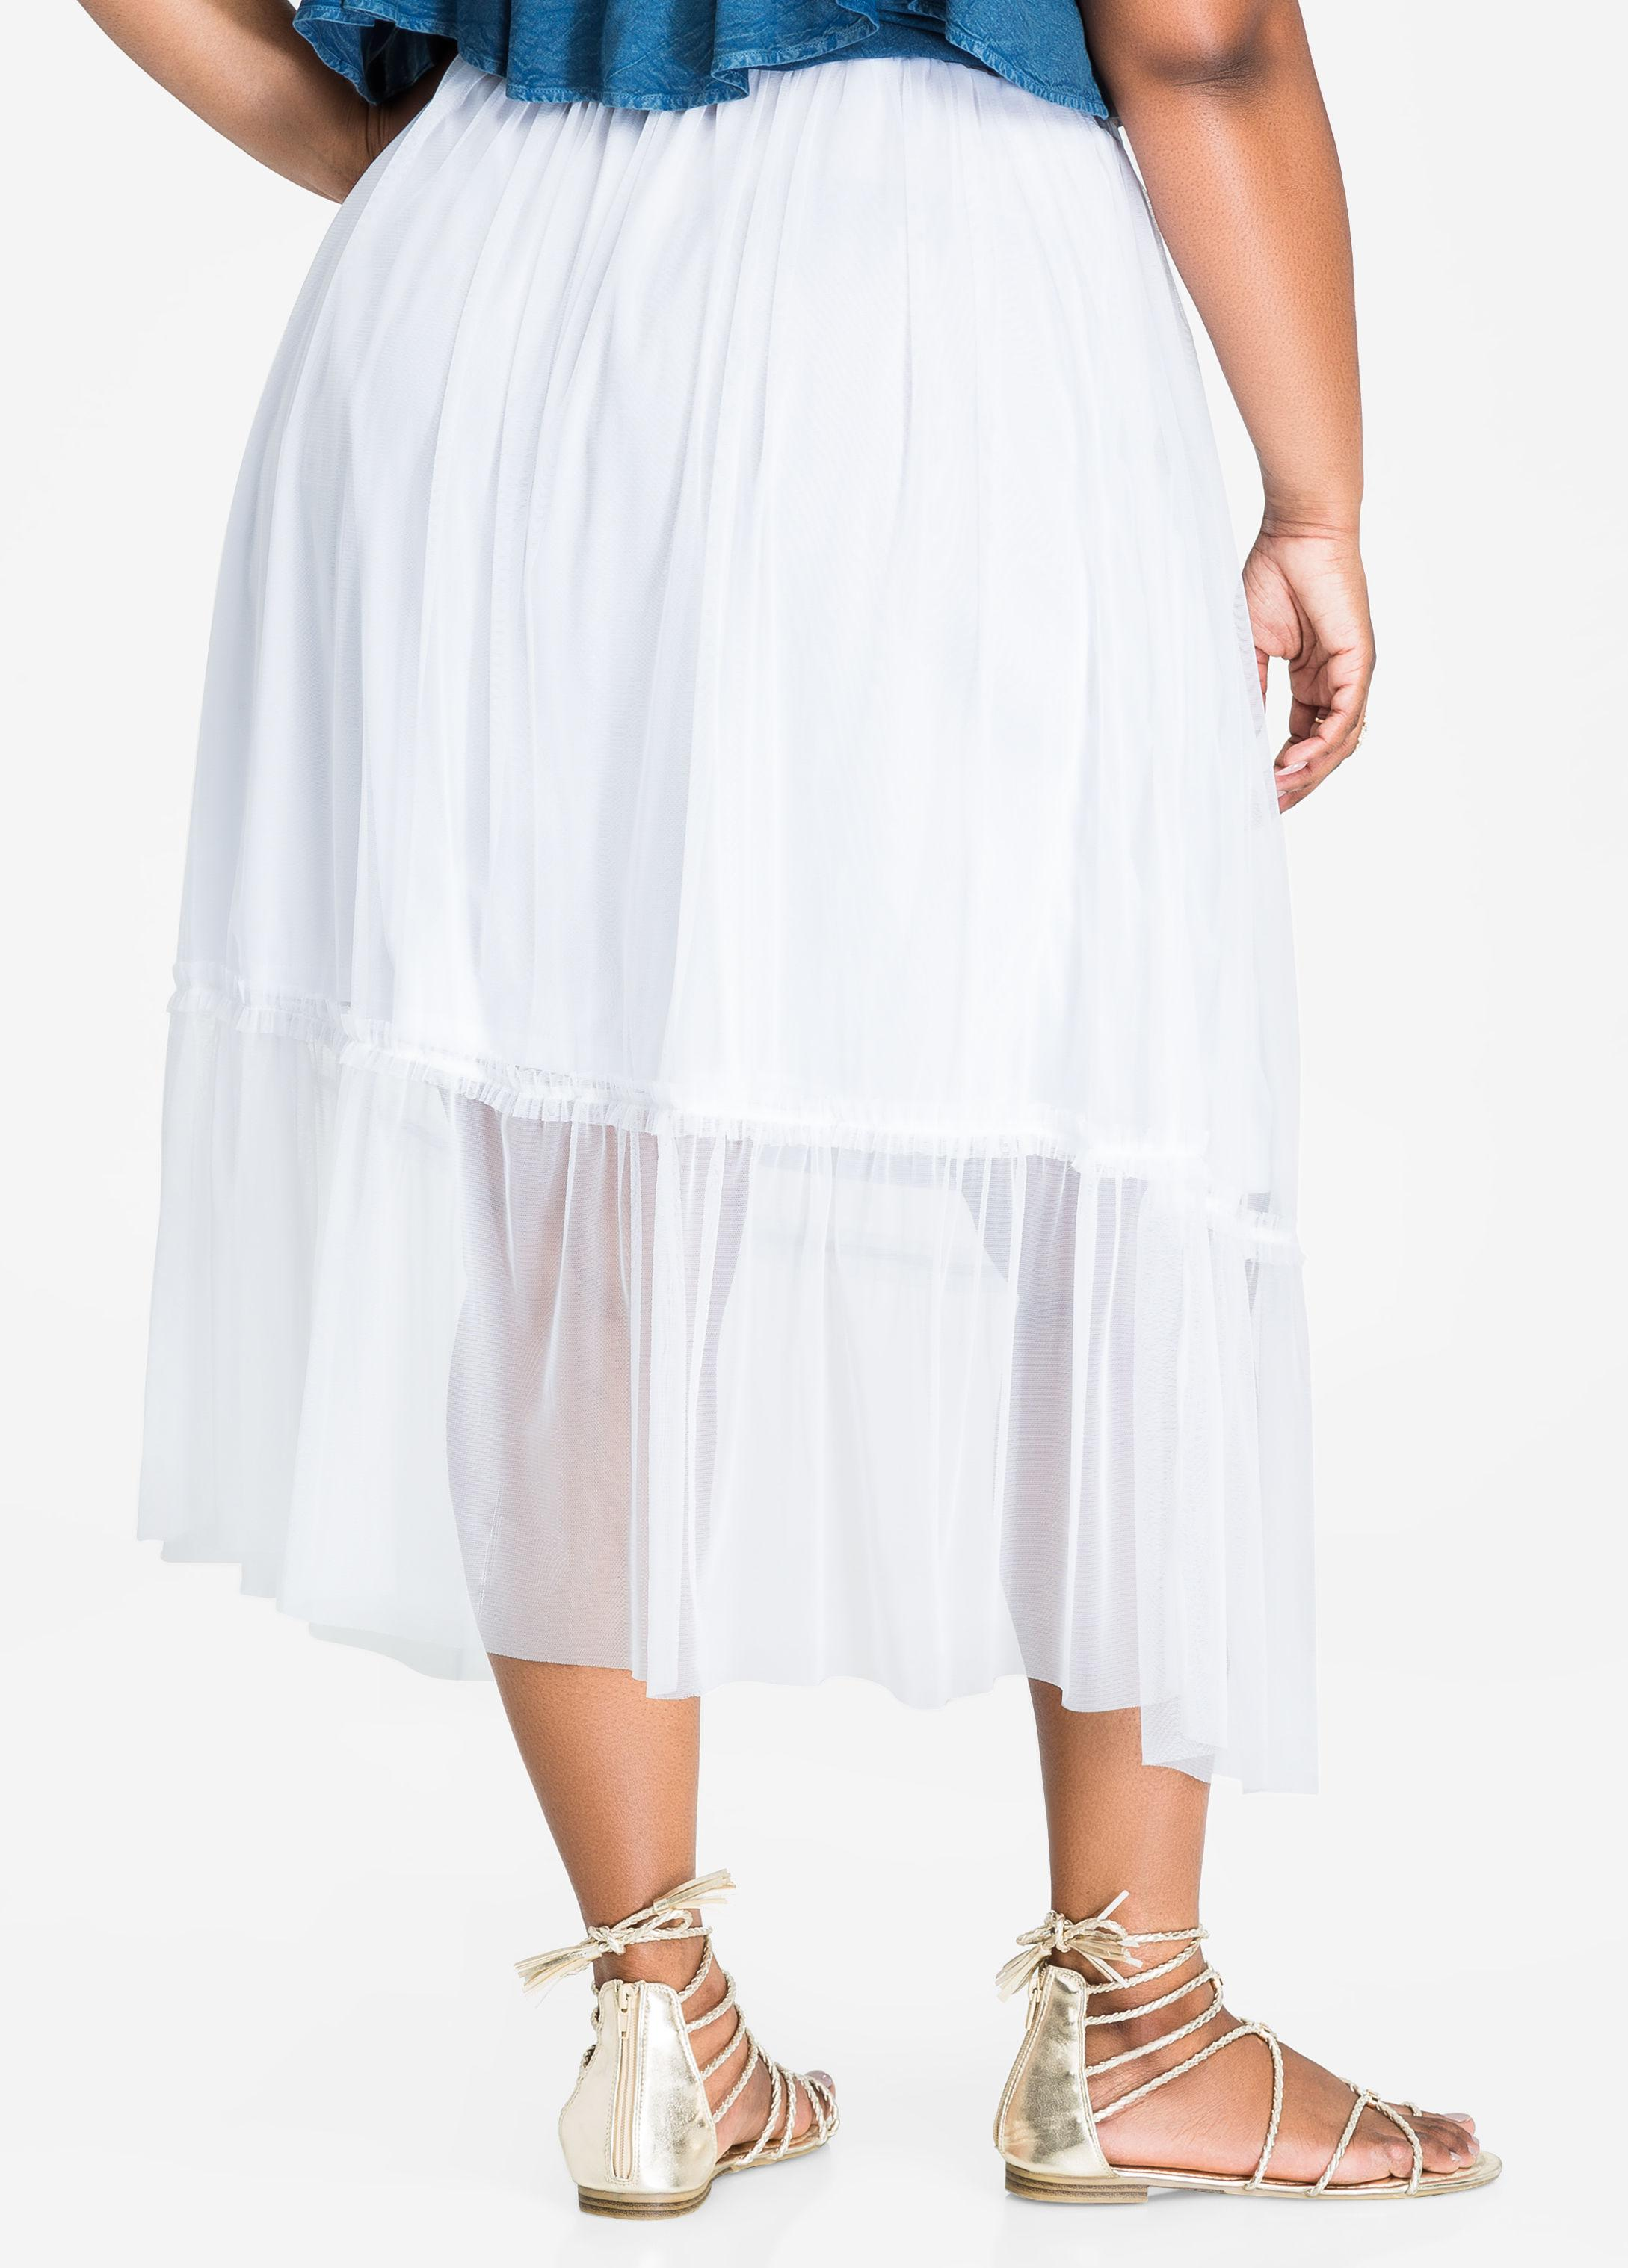 231155fcd Ashley Stewart Sheer Tulle Skirt With Lining in White - Lyst